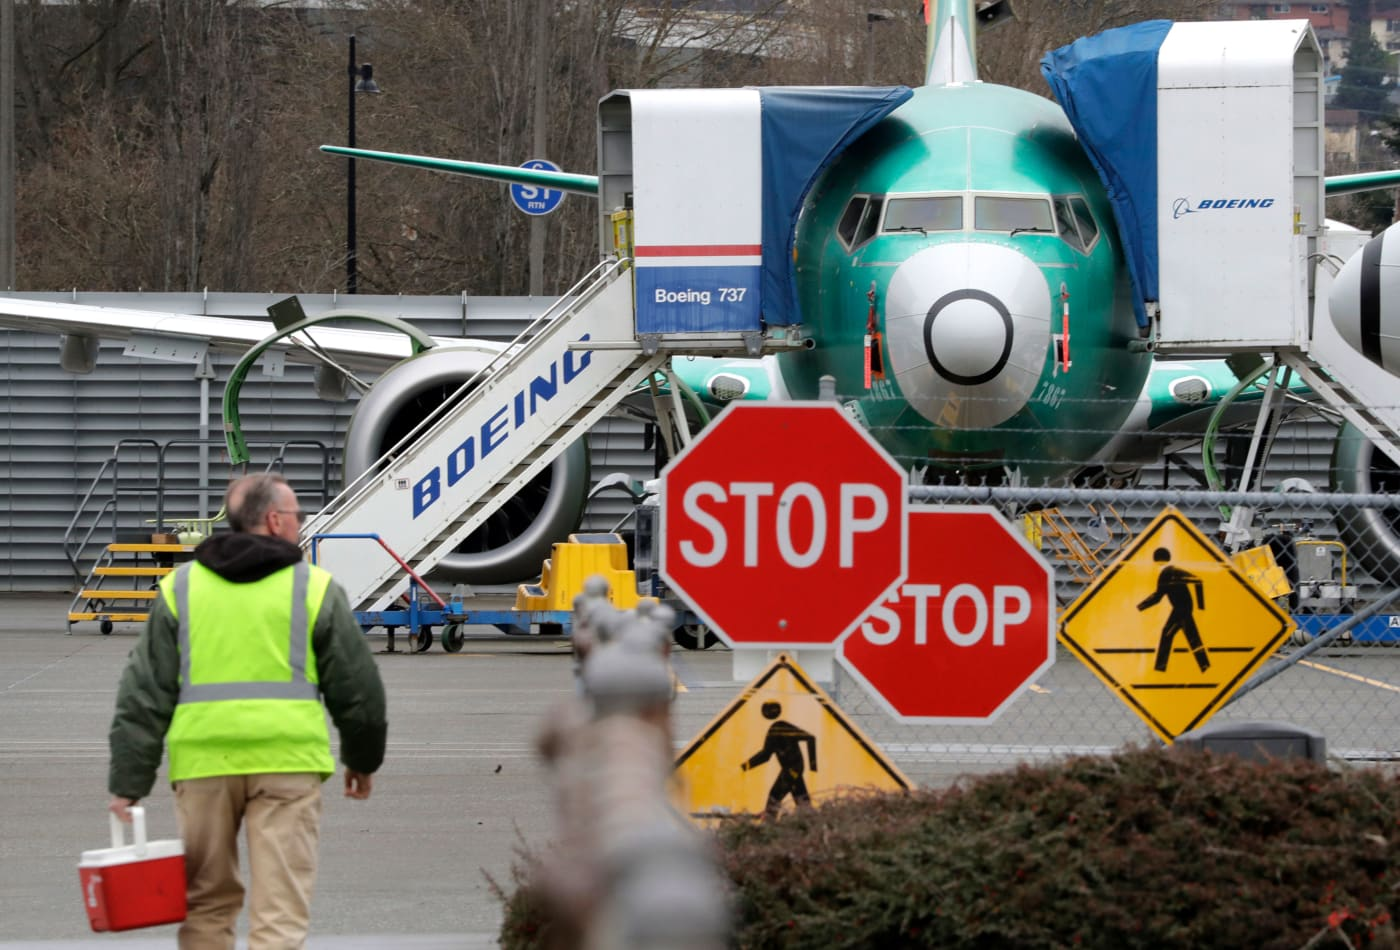 Boeing to expand 737 Max inspections, sources say